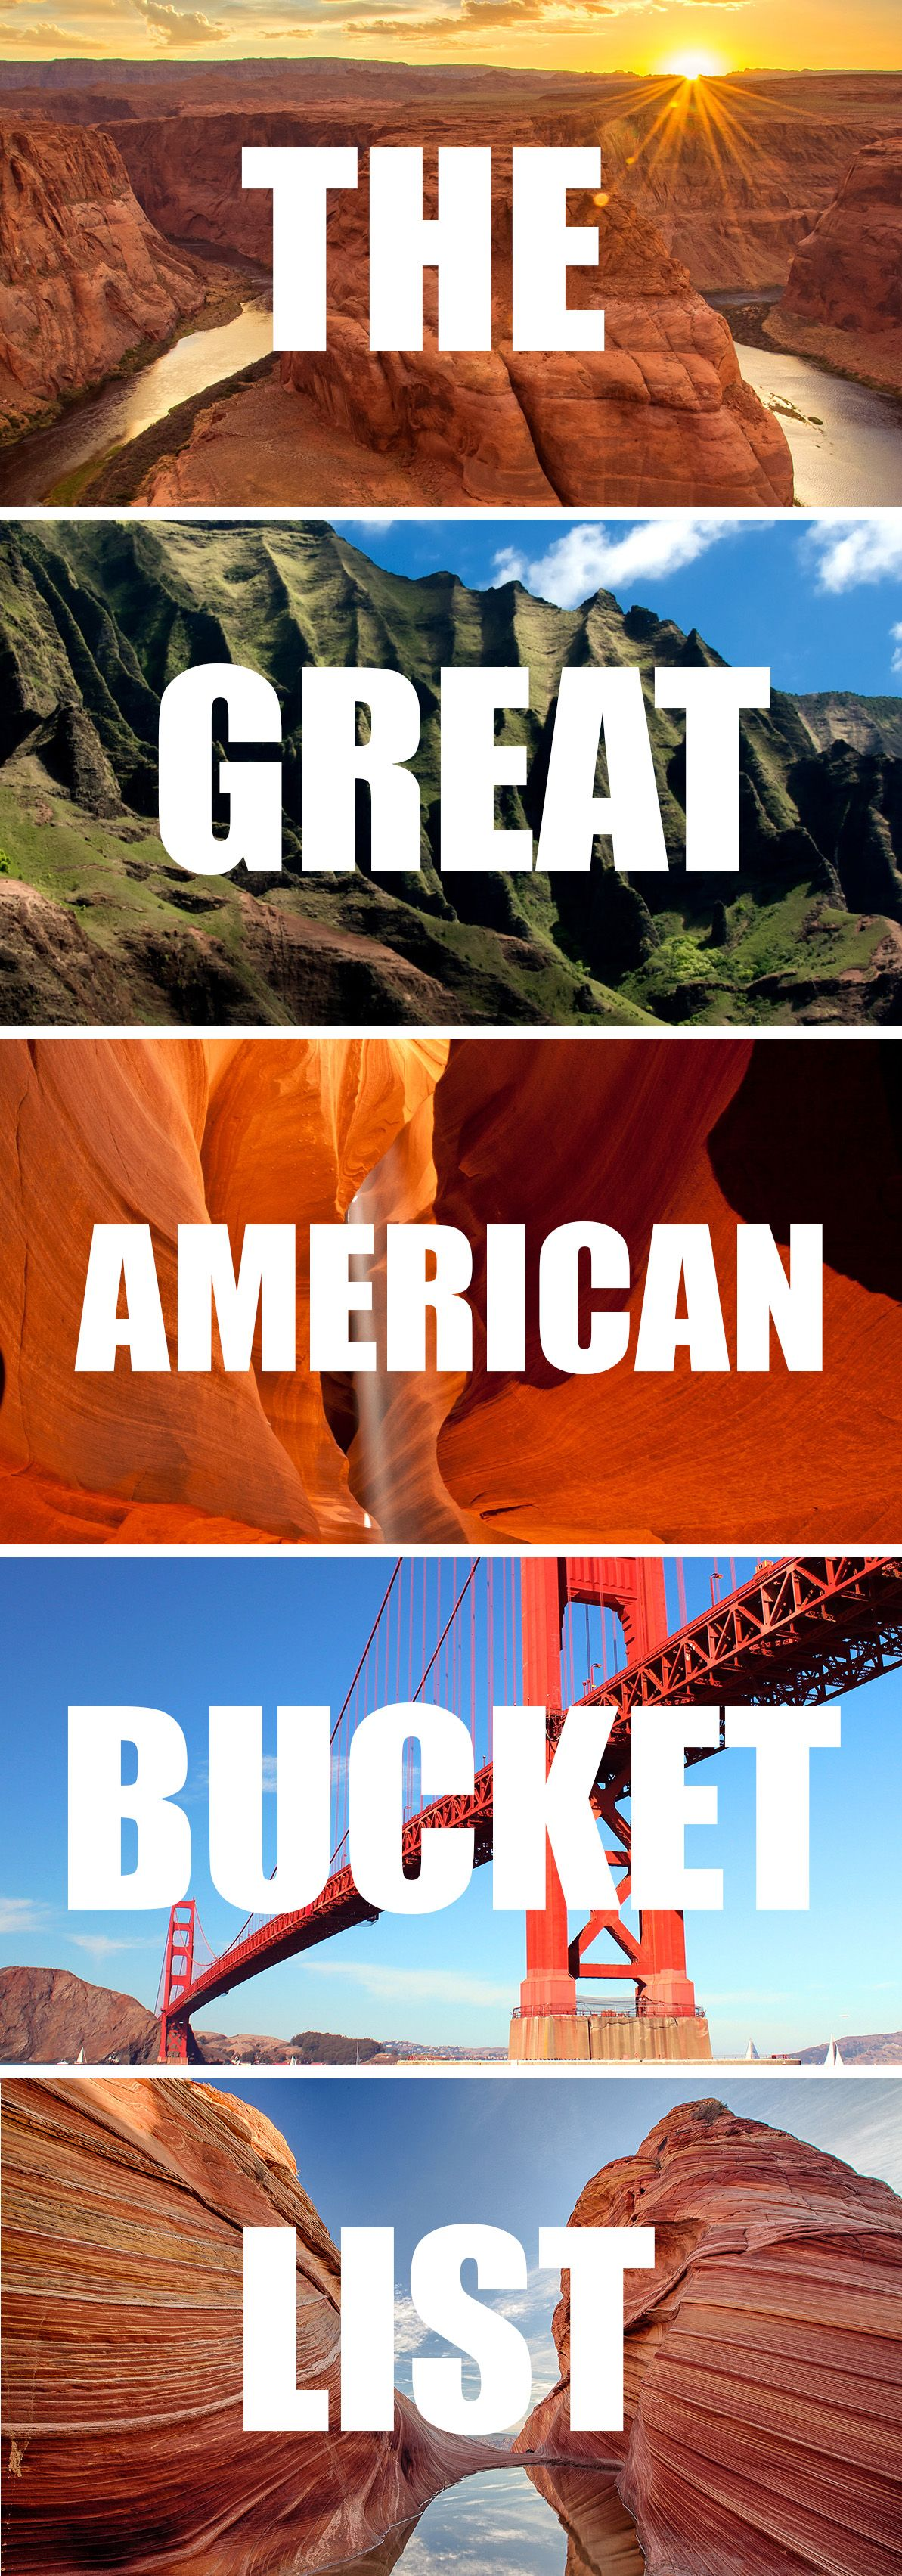 The Great American Bucket List 20 Amazing Places In USA You Have To Visit Before Die Click For More